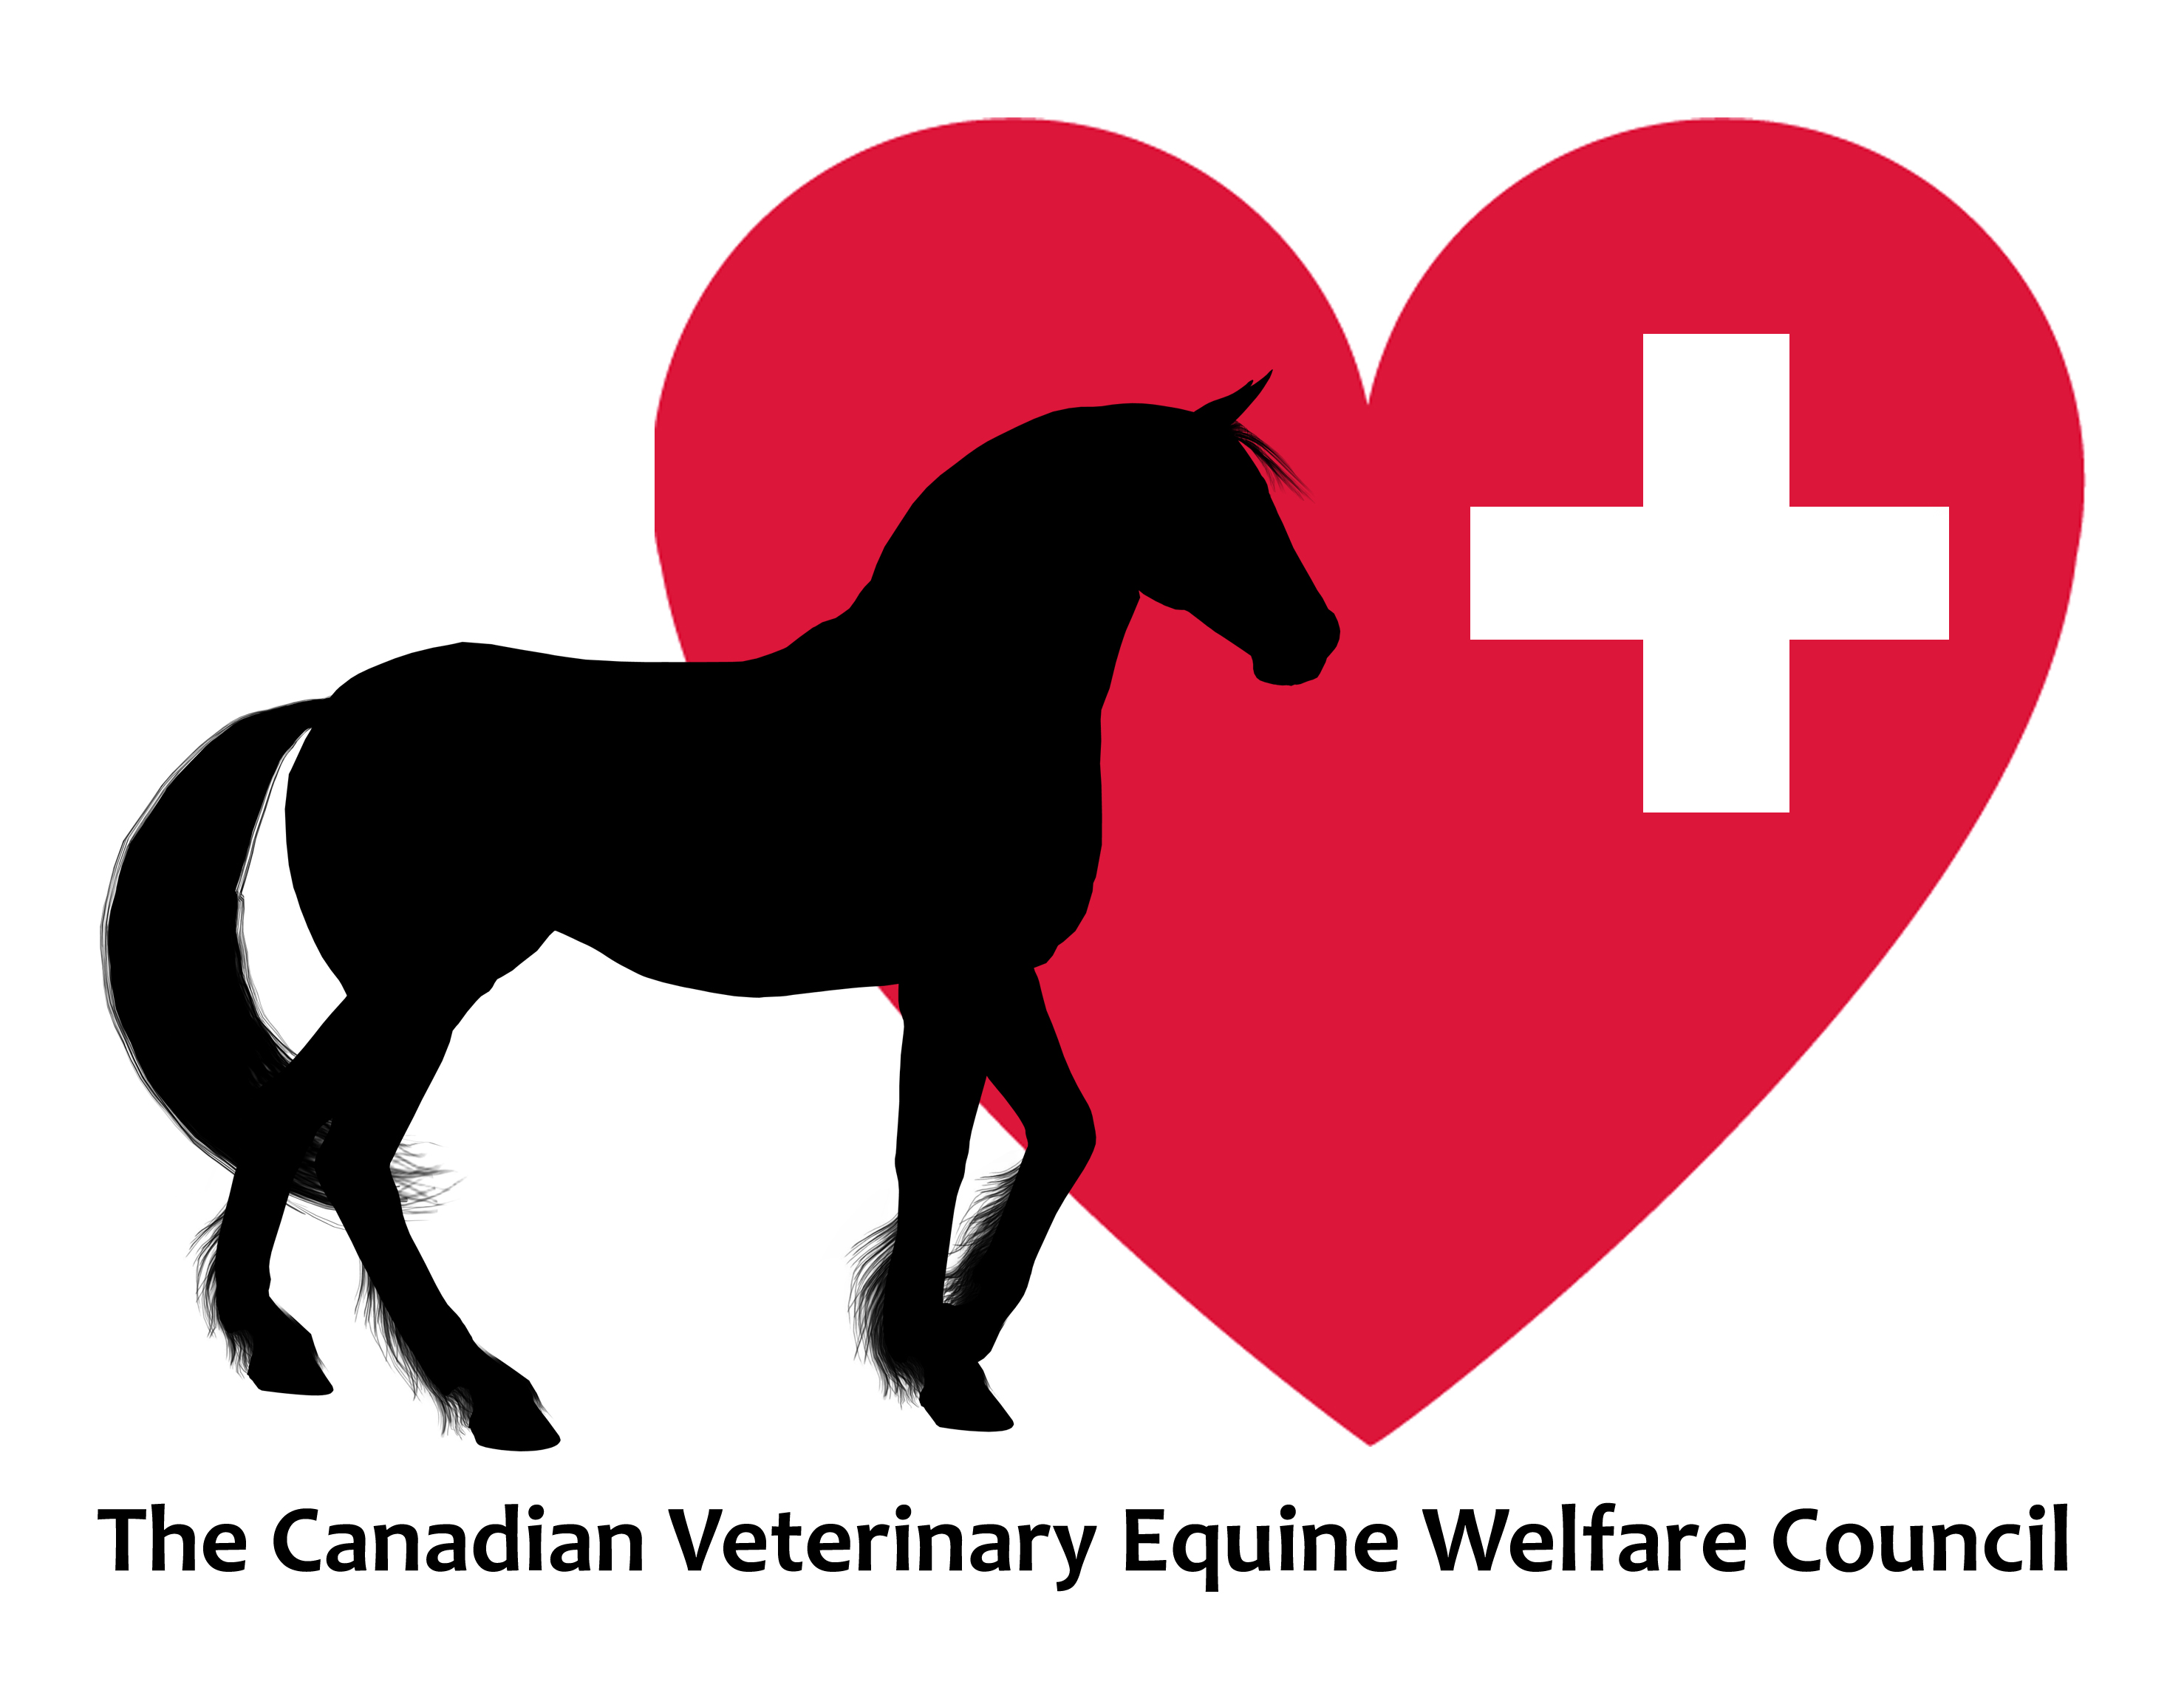 2956x2288 Announcing The Launch Of The Canadian Veterinary Equine Welfare